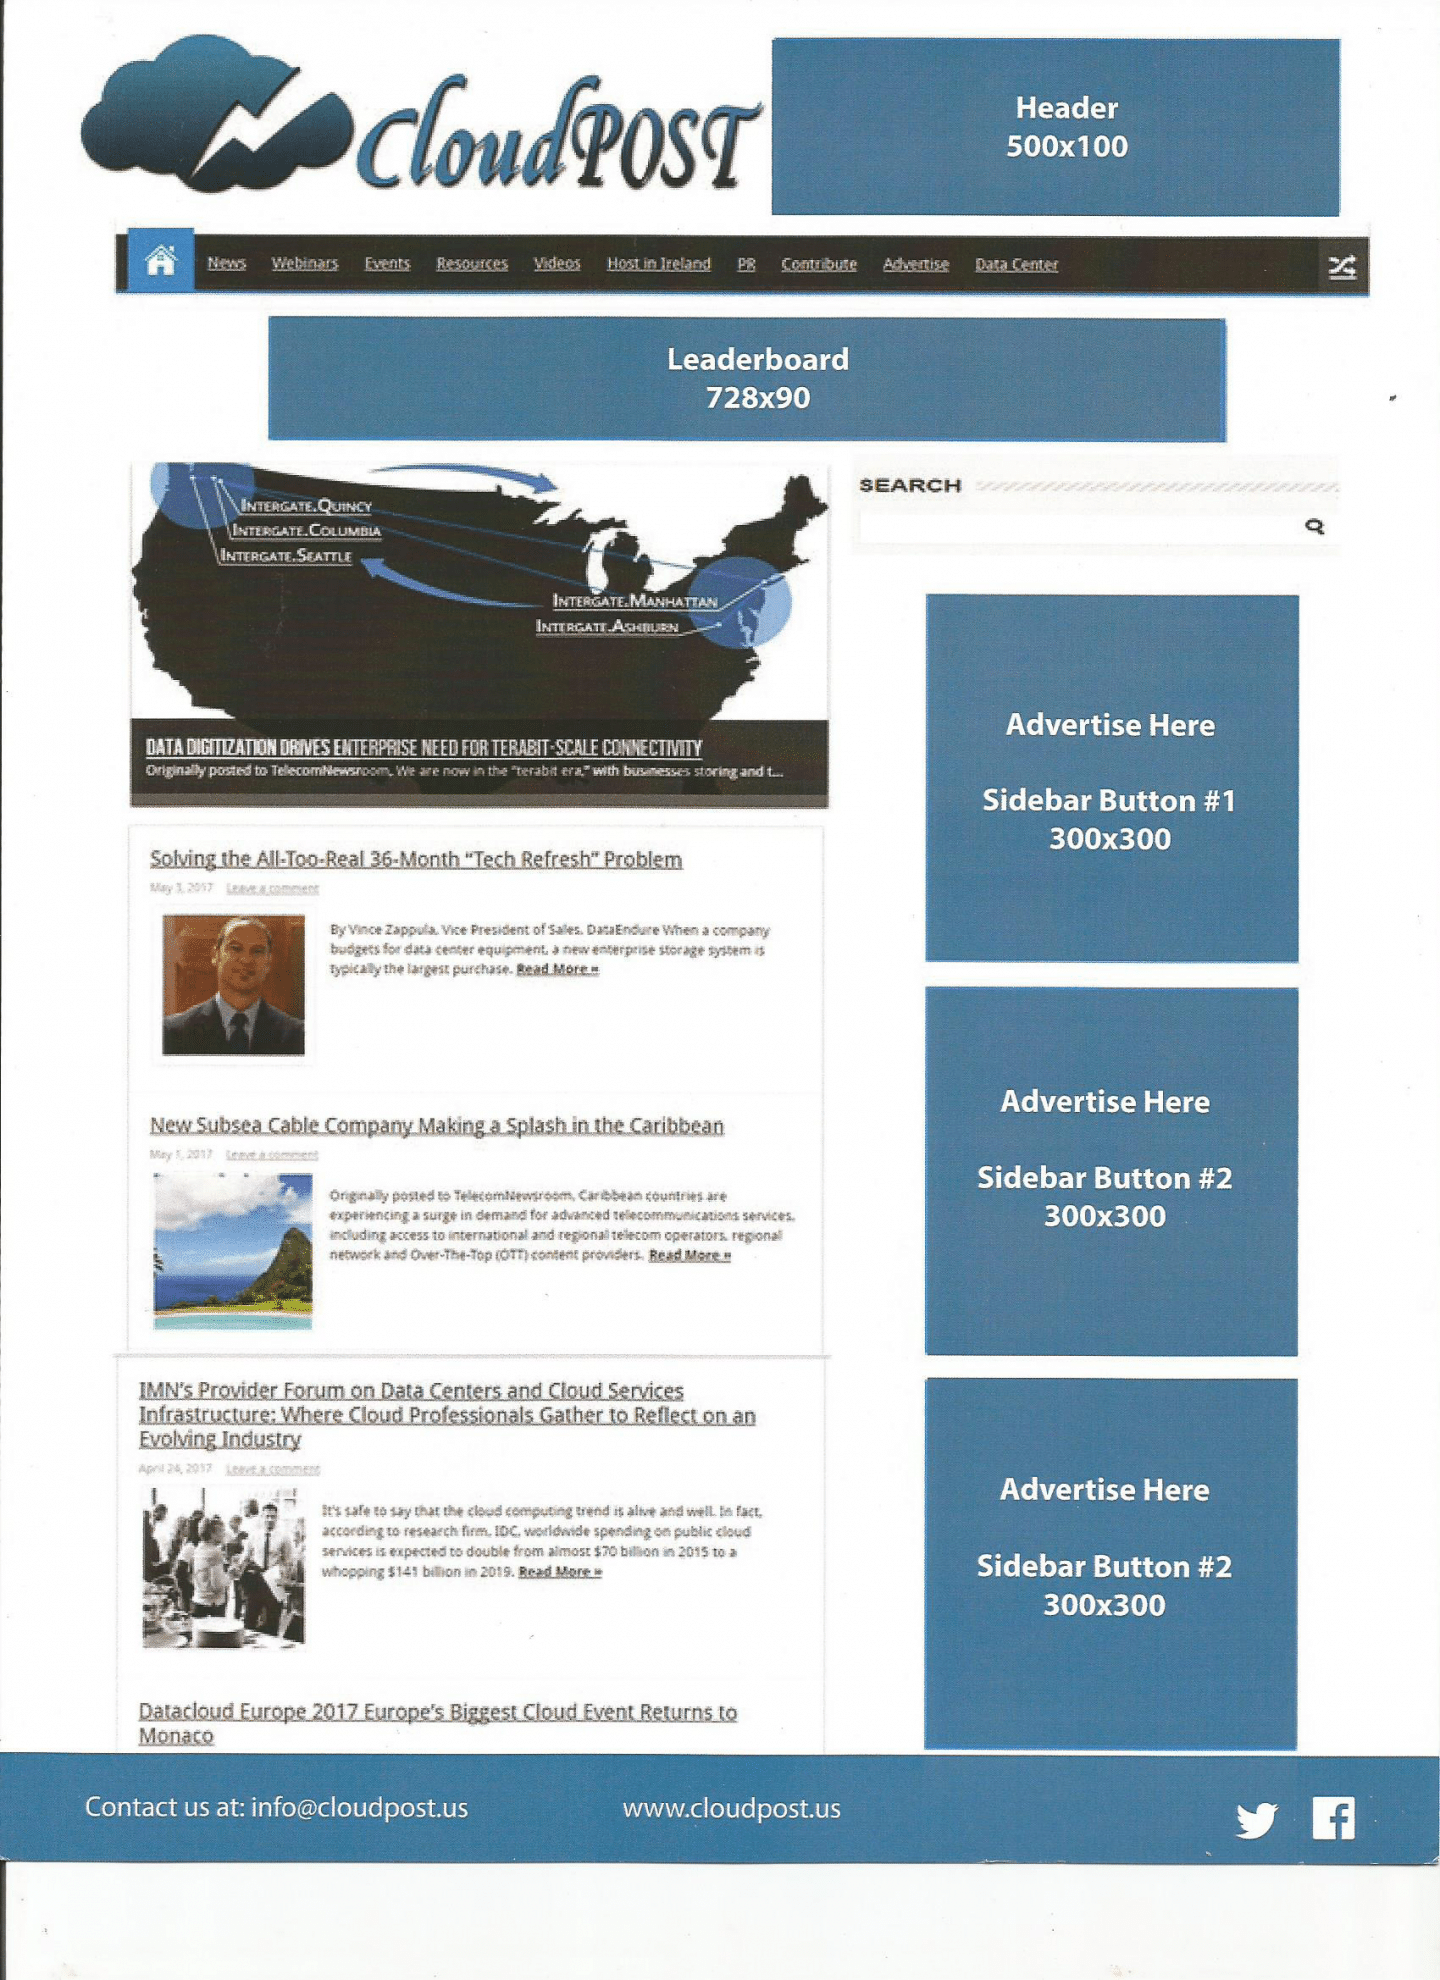 CloudPOST Advertising page 2